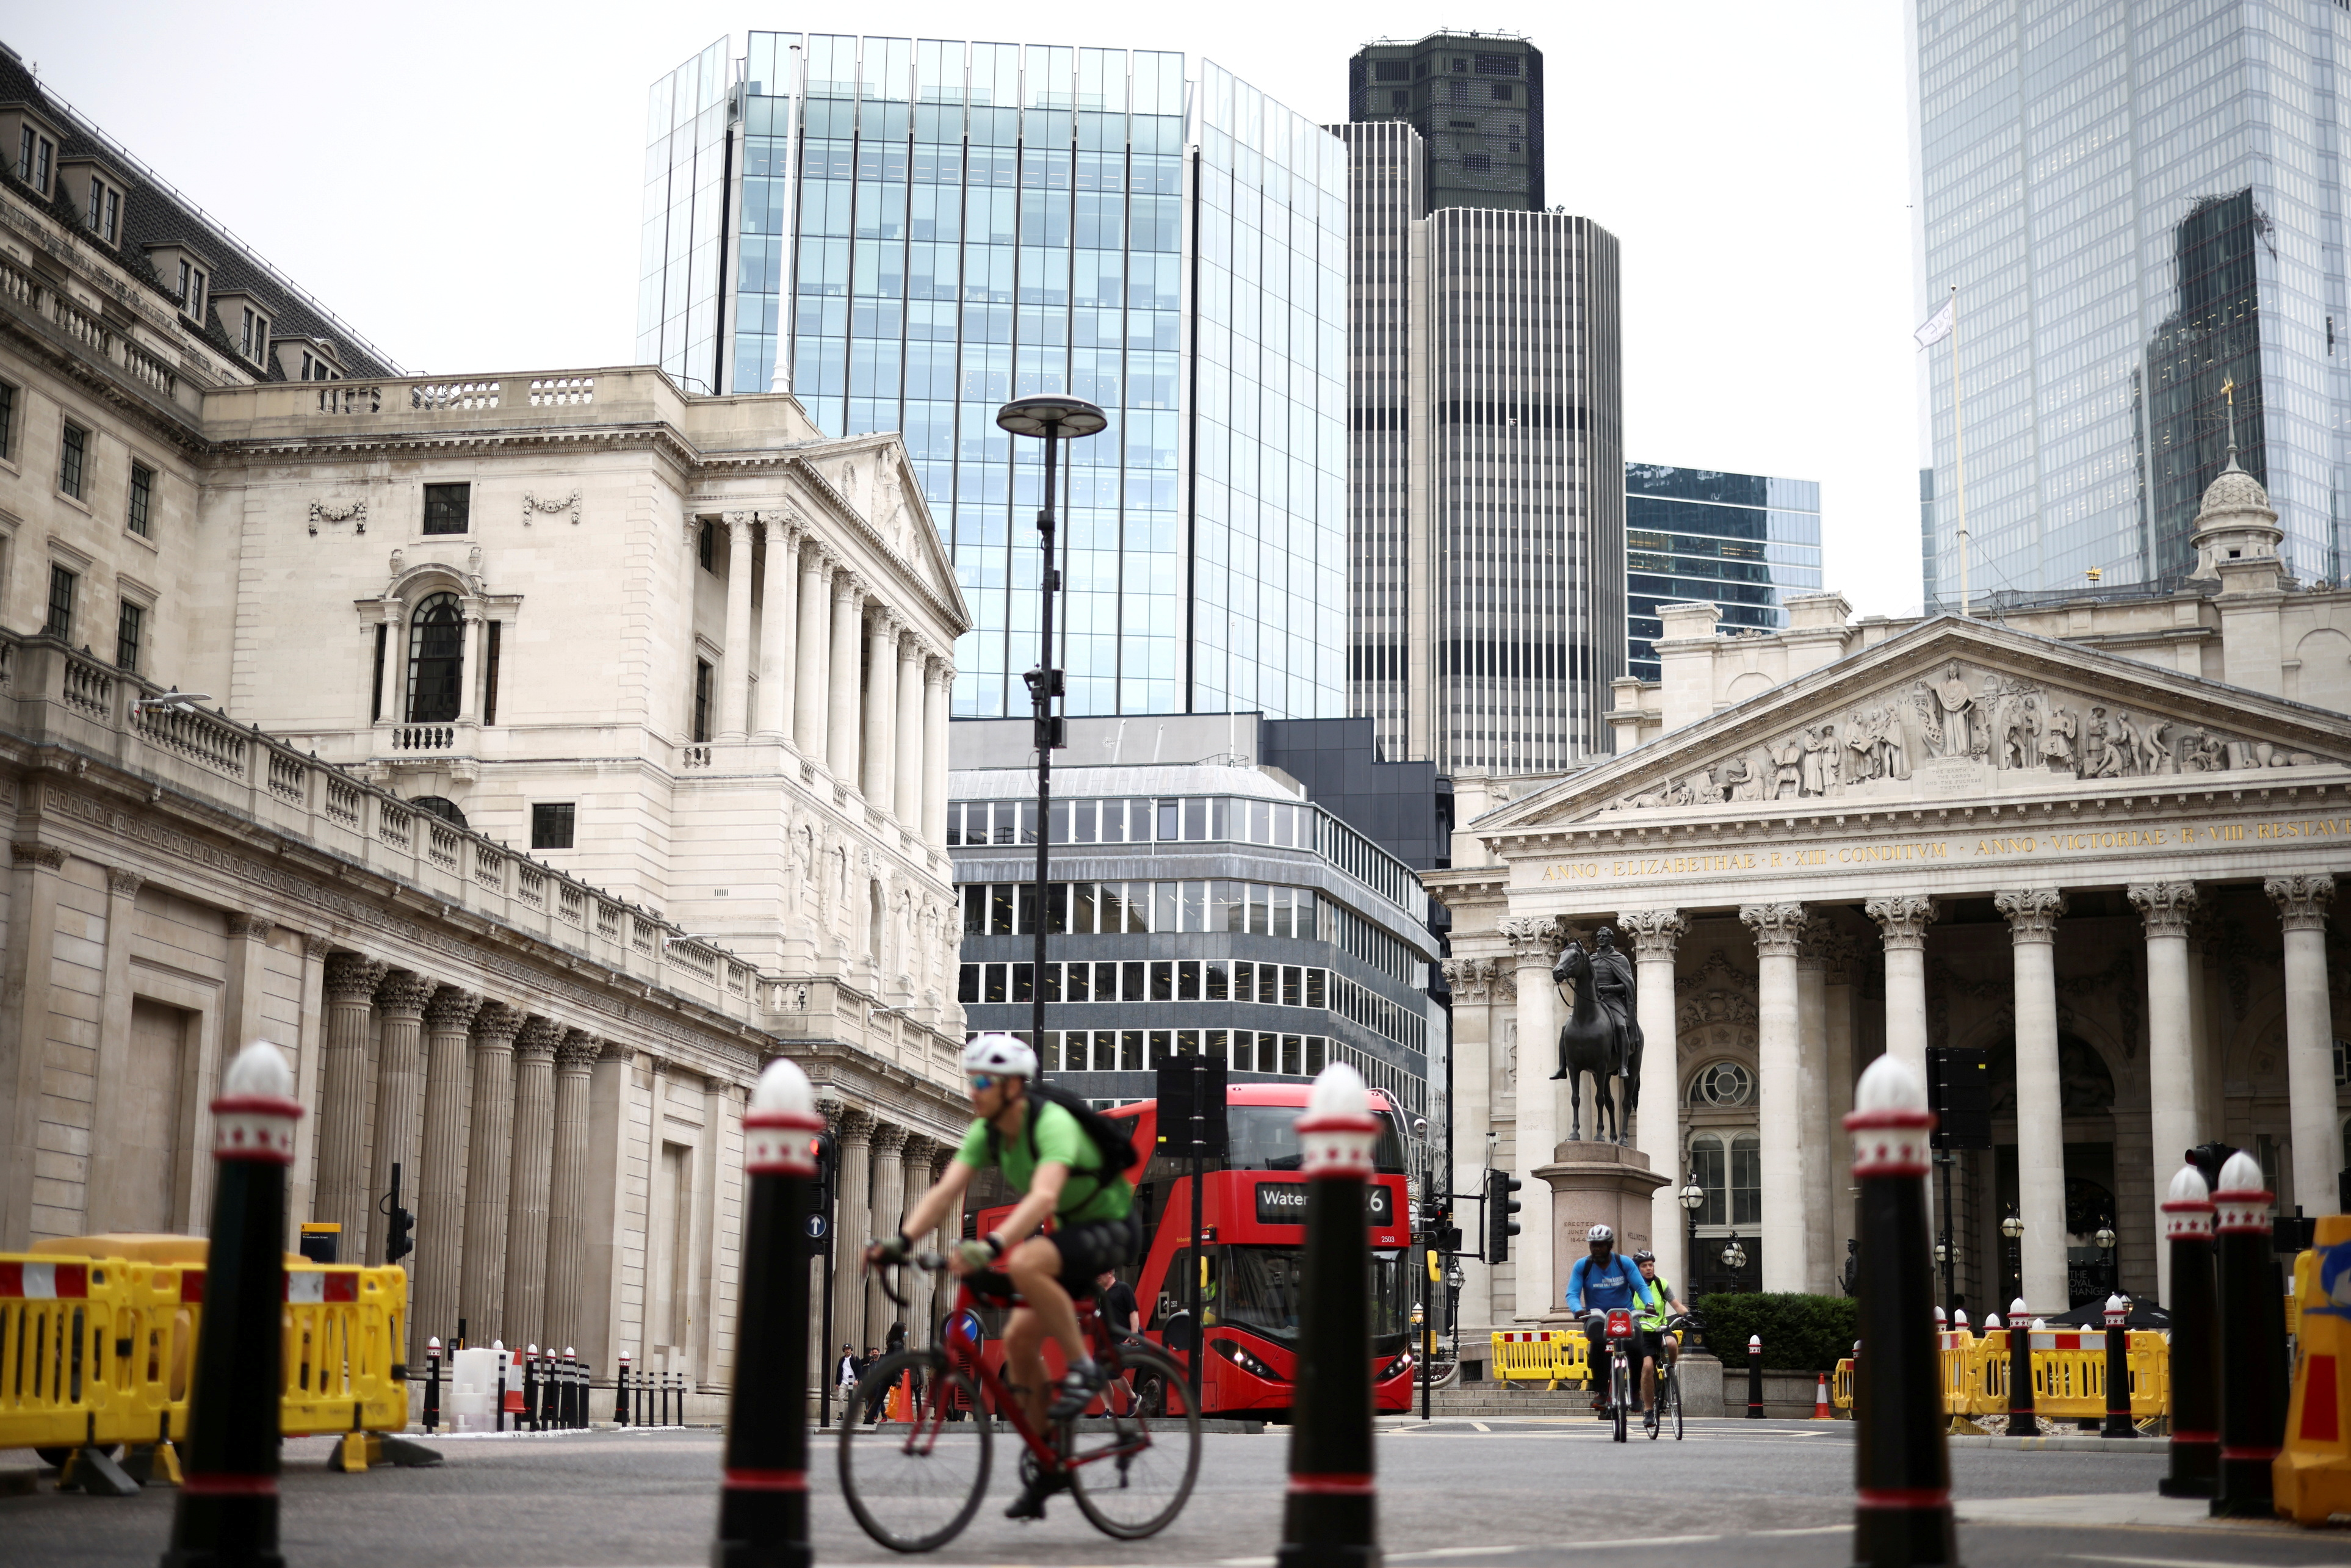 The Bank of England can be seen as people cycle through the City of London financial district, in London, Britain, June 11, 2021. REUTERS/Henry Nicholls/File Photo